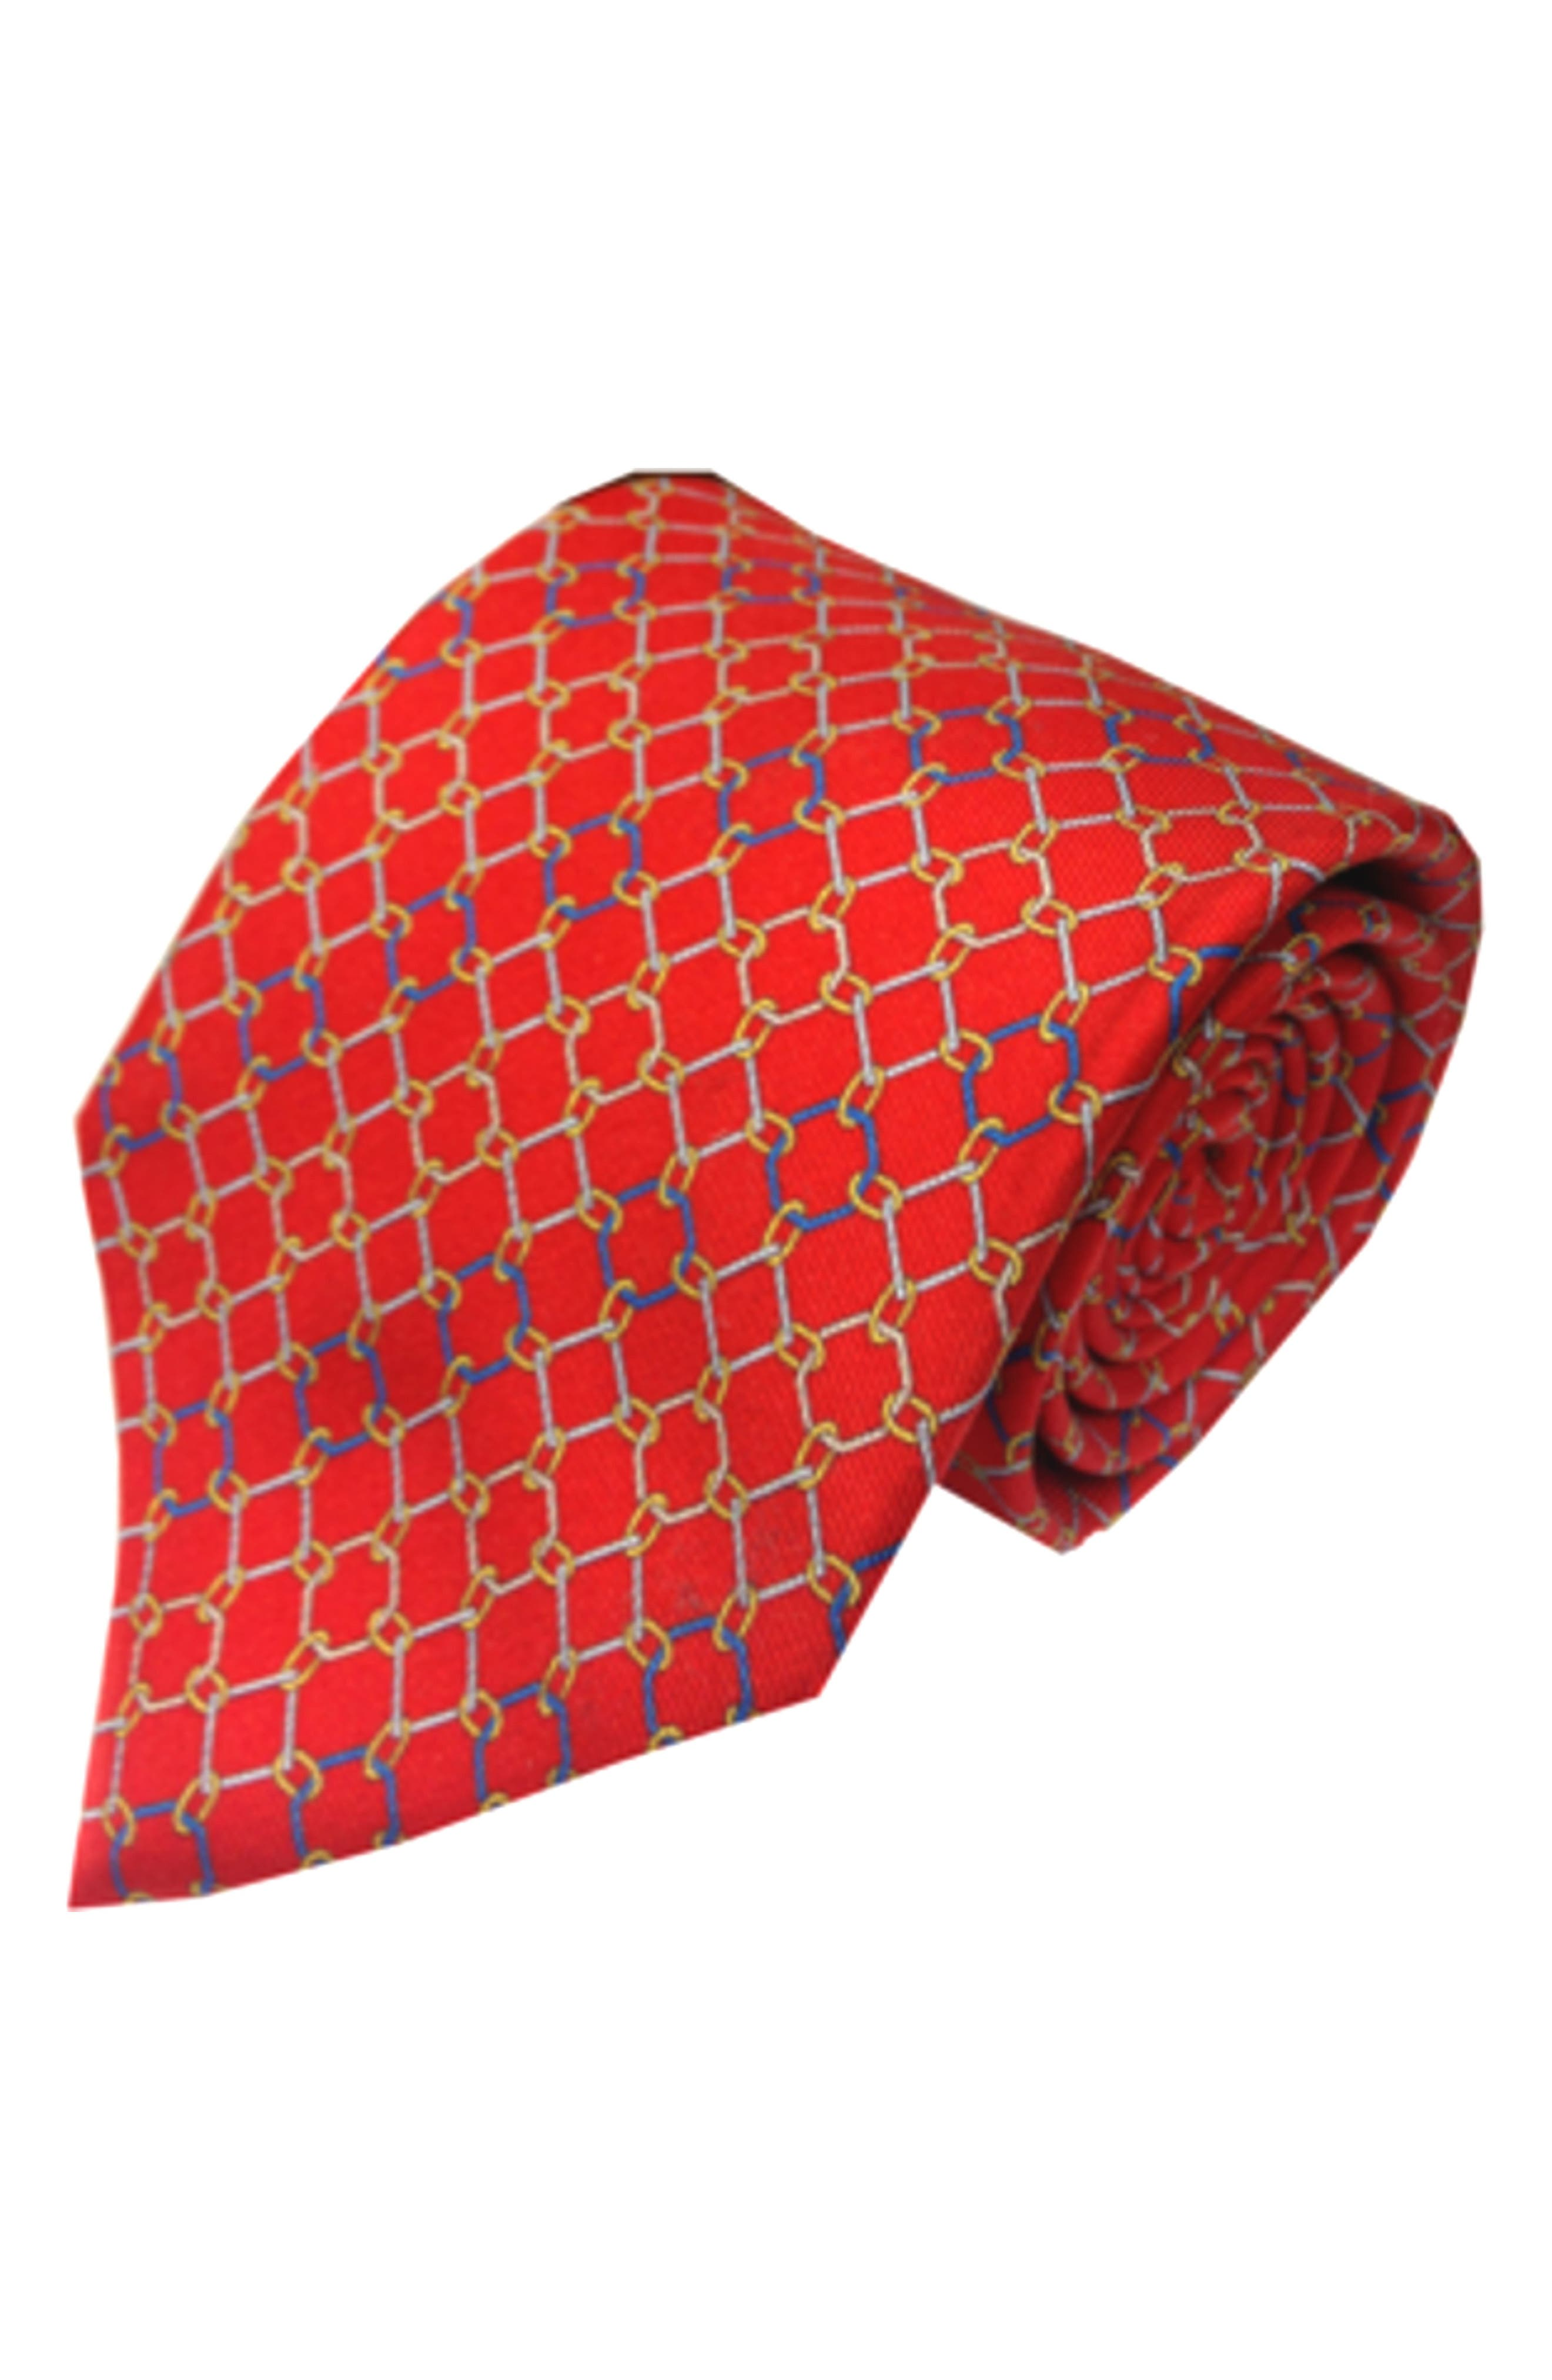 Ball & Chain Silk Tie,                         Main,                         color, Red